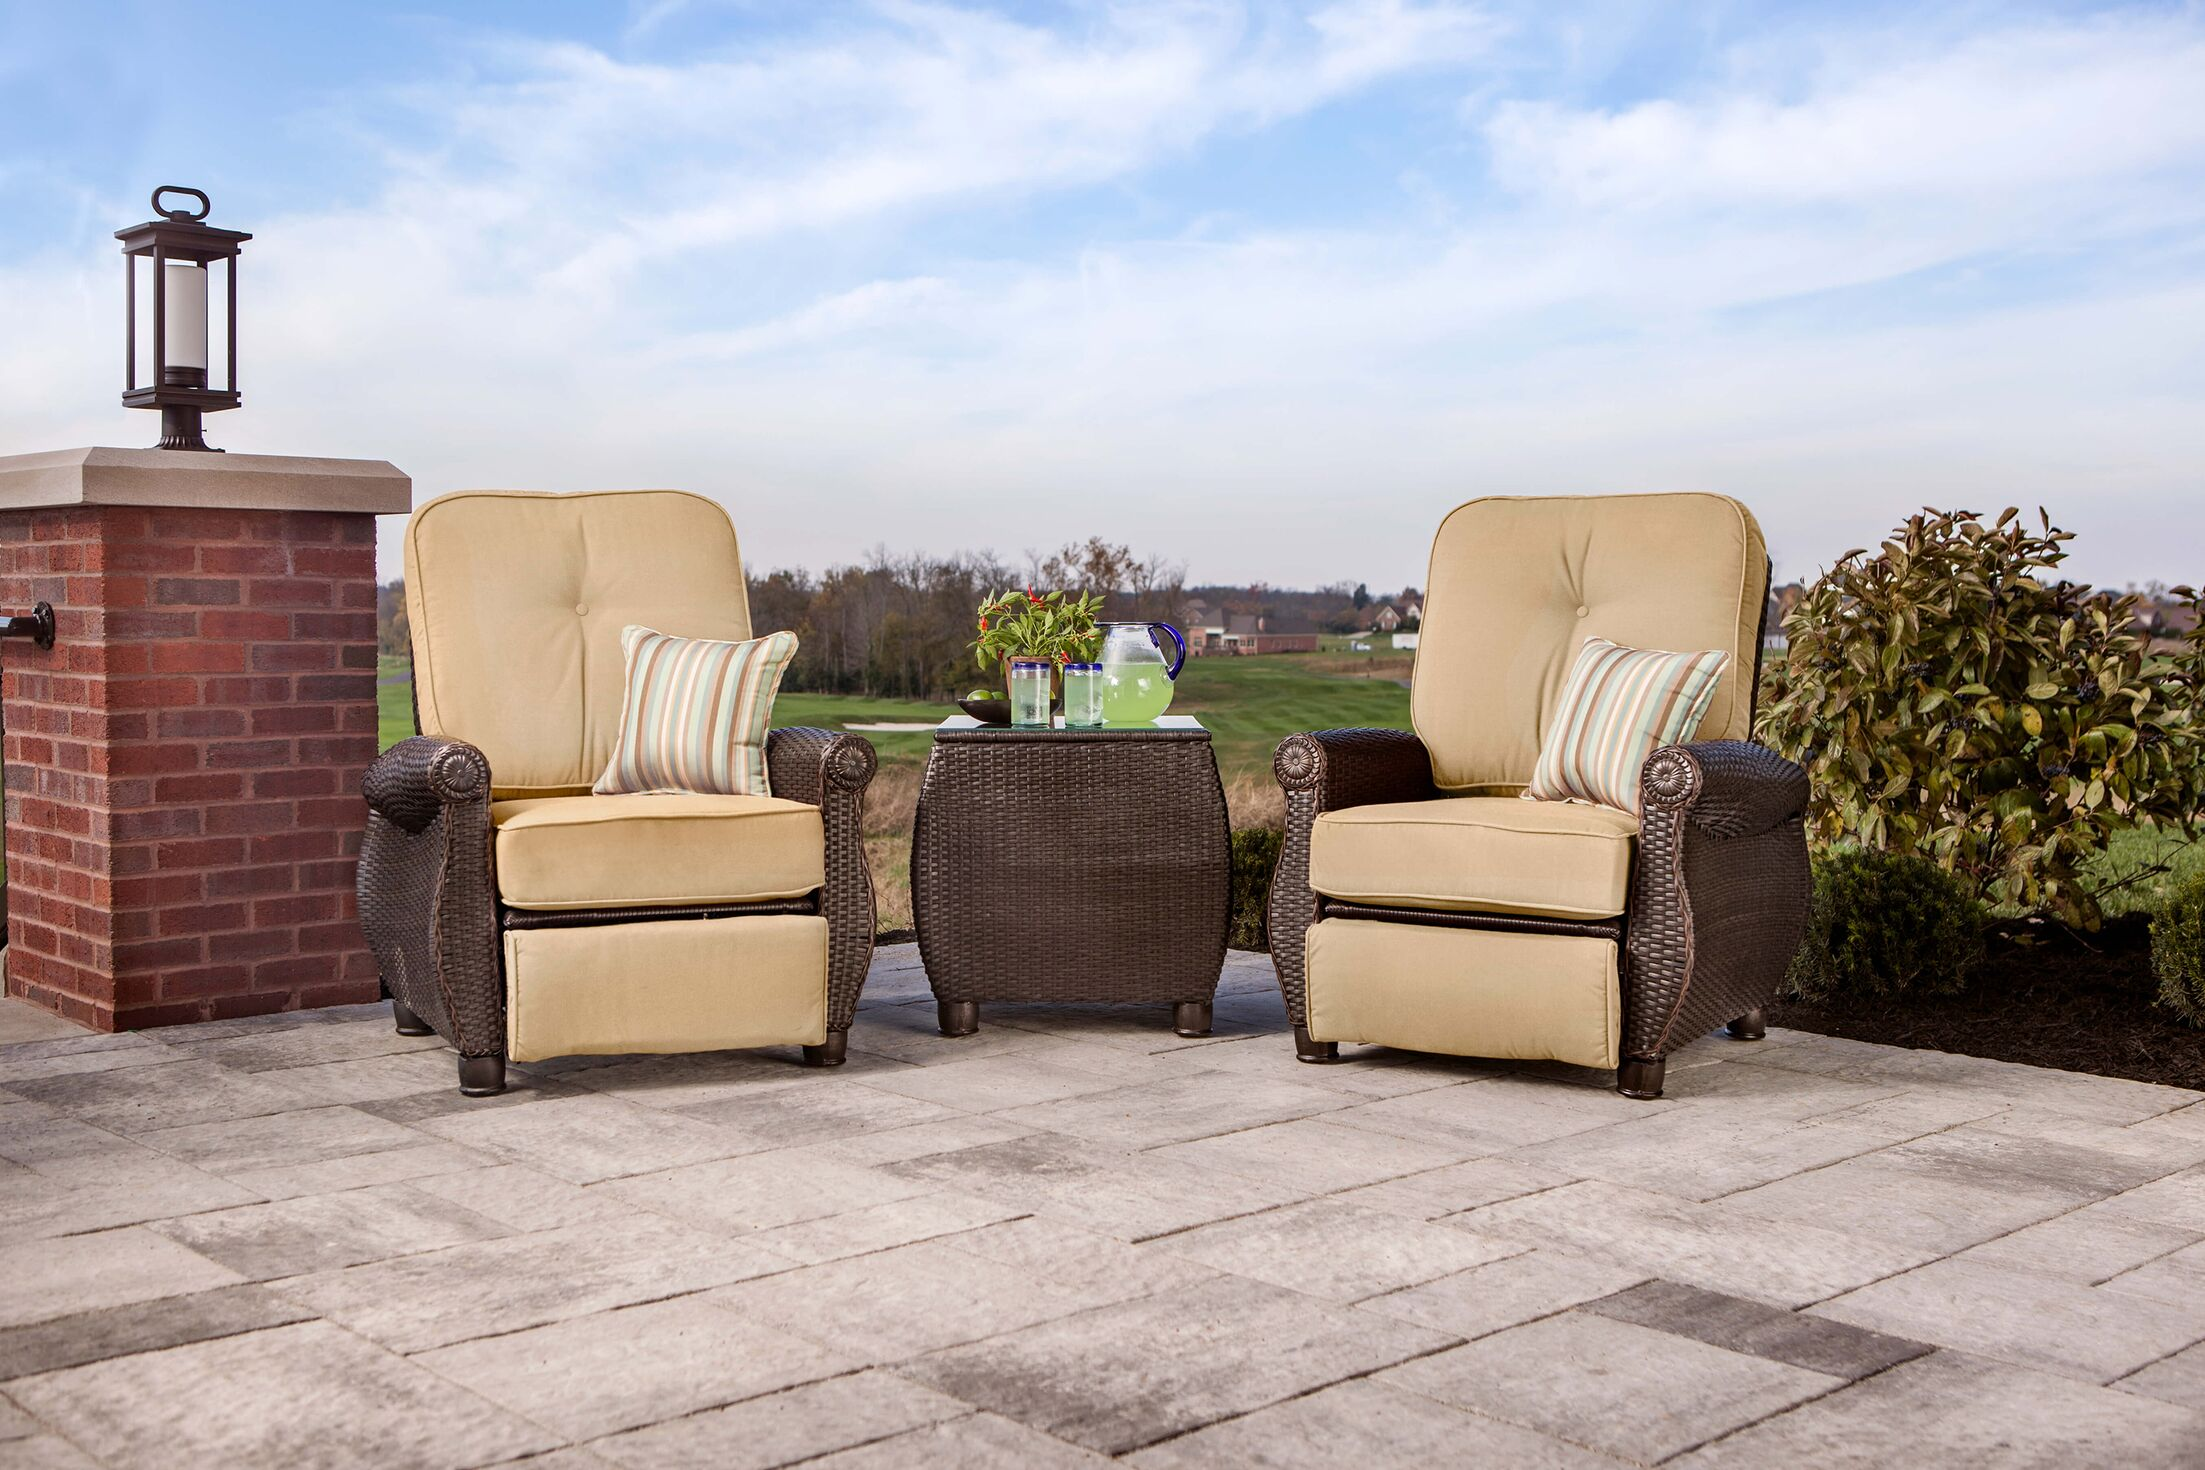 Breckenridge 3 Piece Sunbrella Recliner Seating Group with Cushion